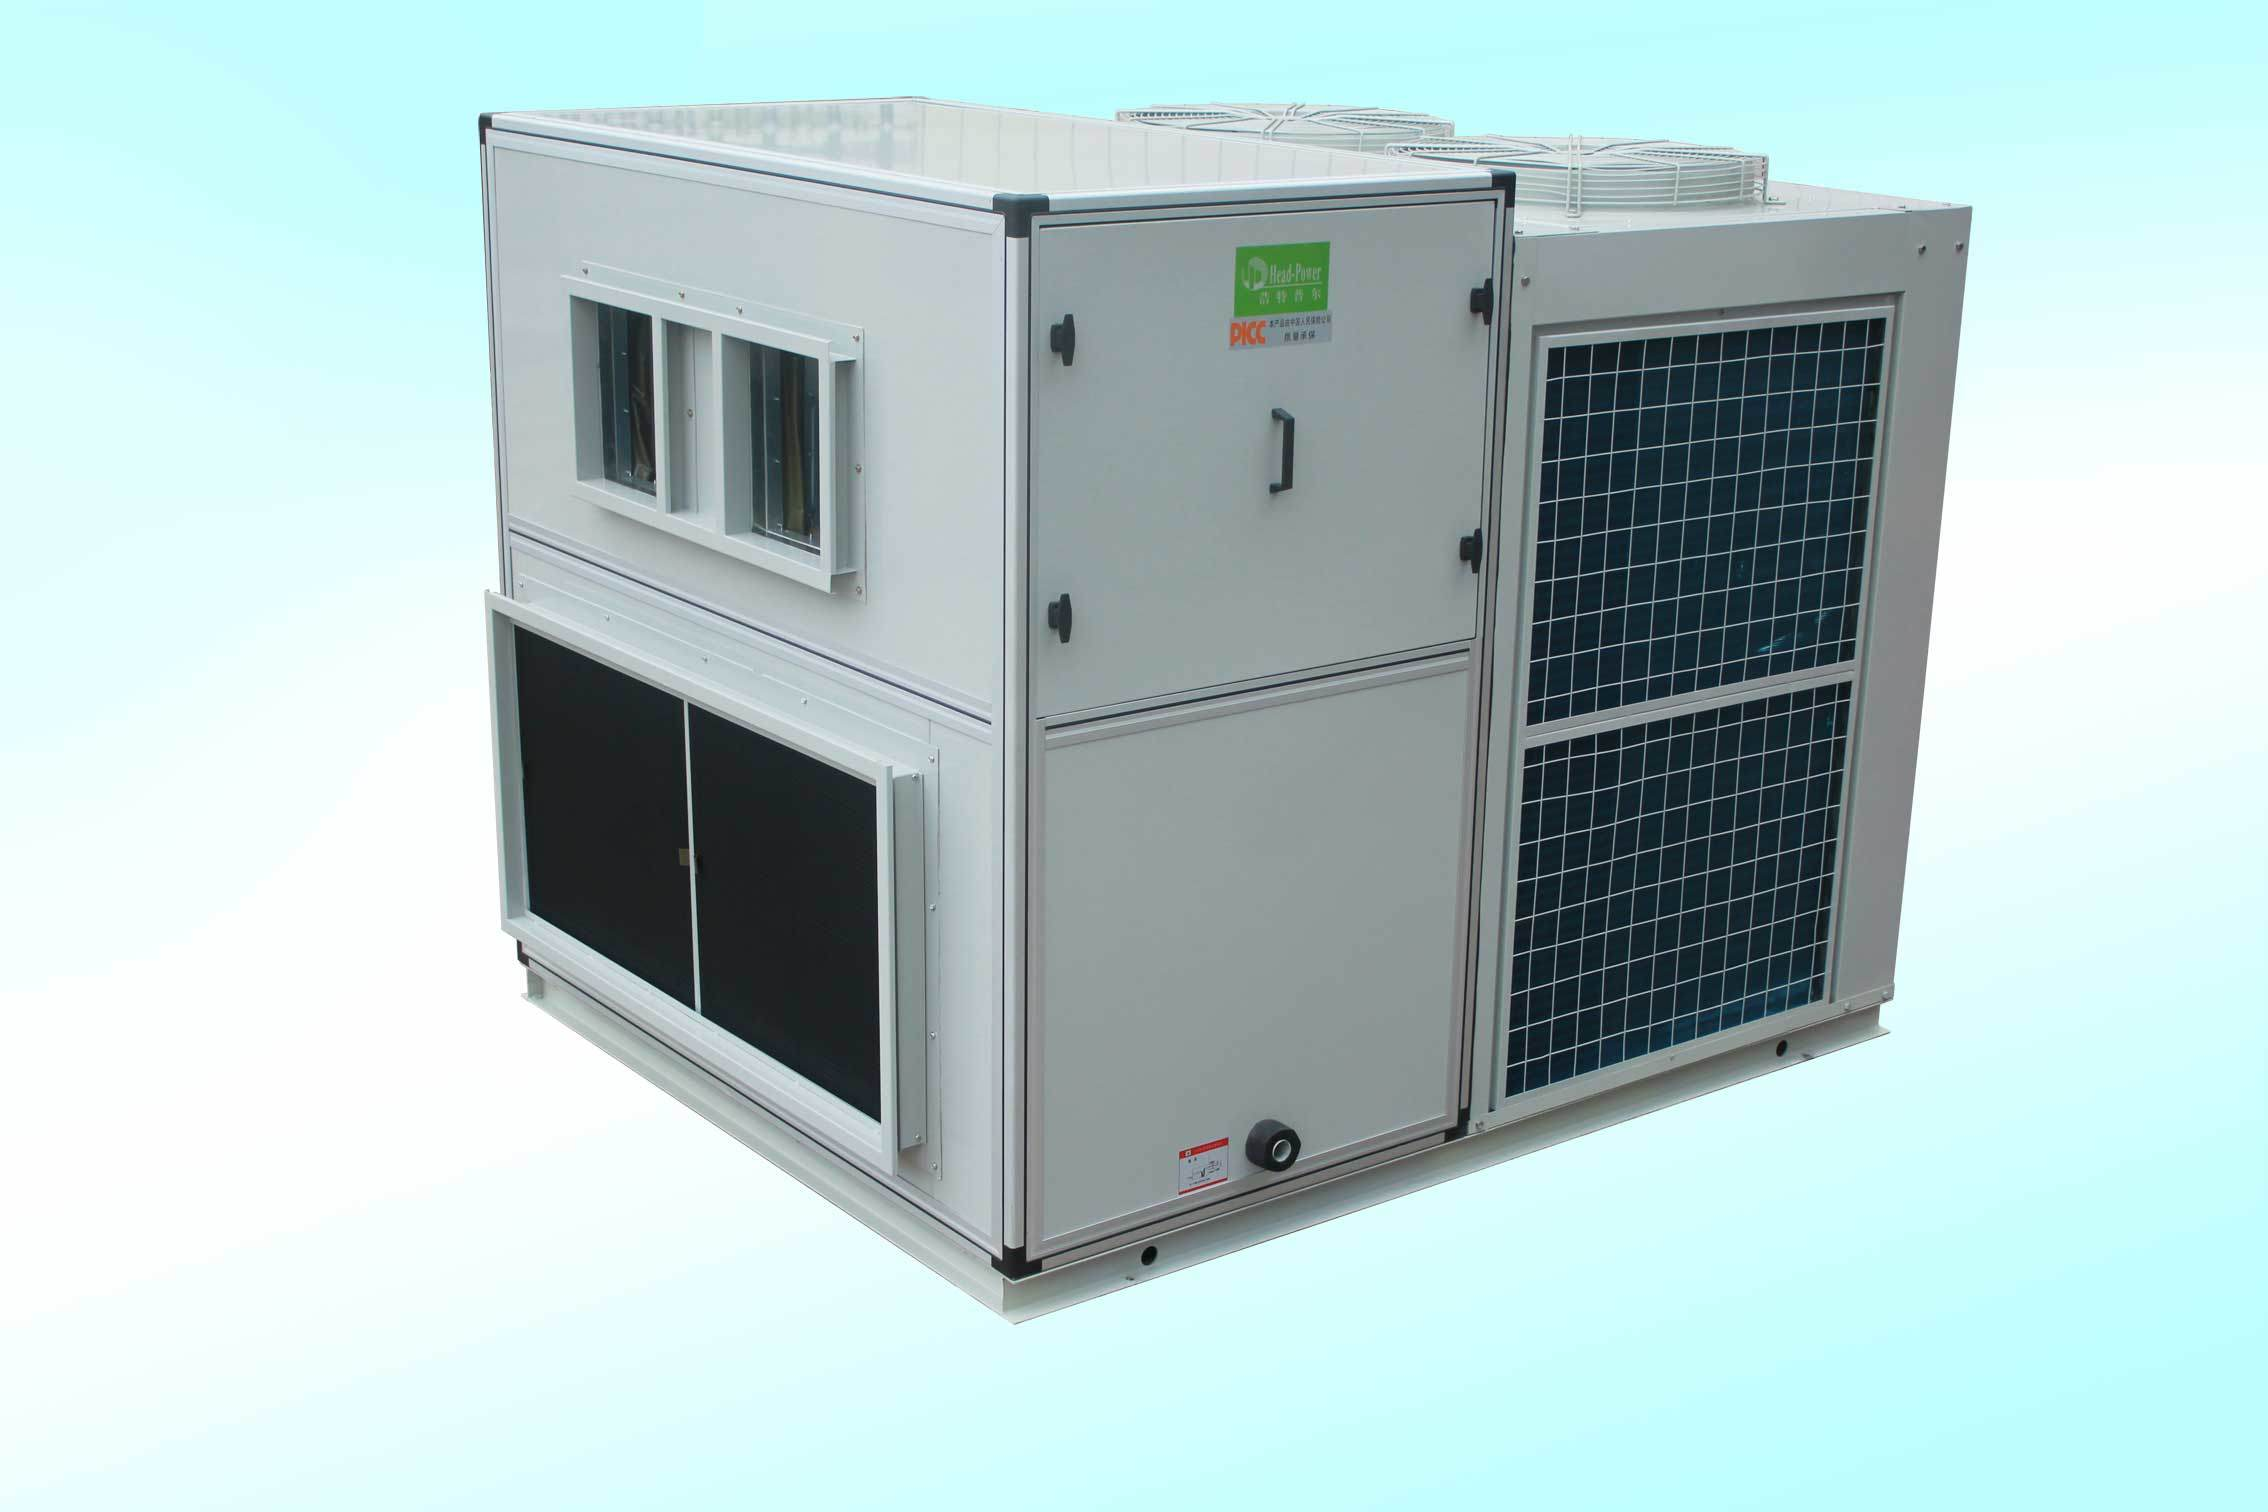 #26A5A5 Packaged Rooftop Air Conditioner China Packaged Rooftop  Best 1423 Best Home Central Ac Units photos with 2268x1512 px on helpvideos.info - Air Conditioners, Air Coolers and more